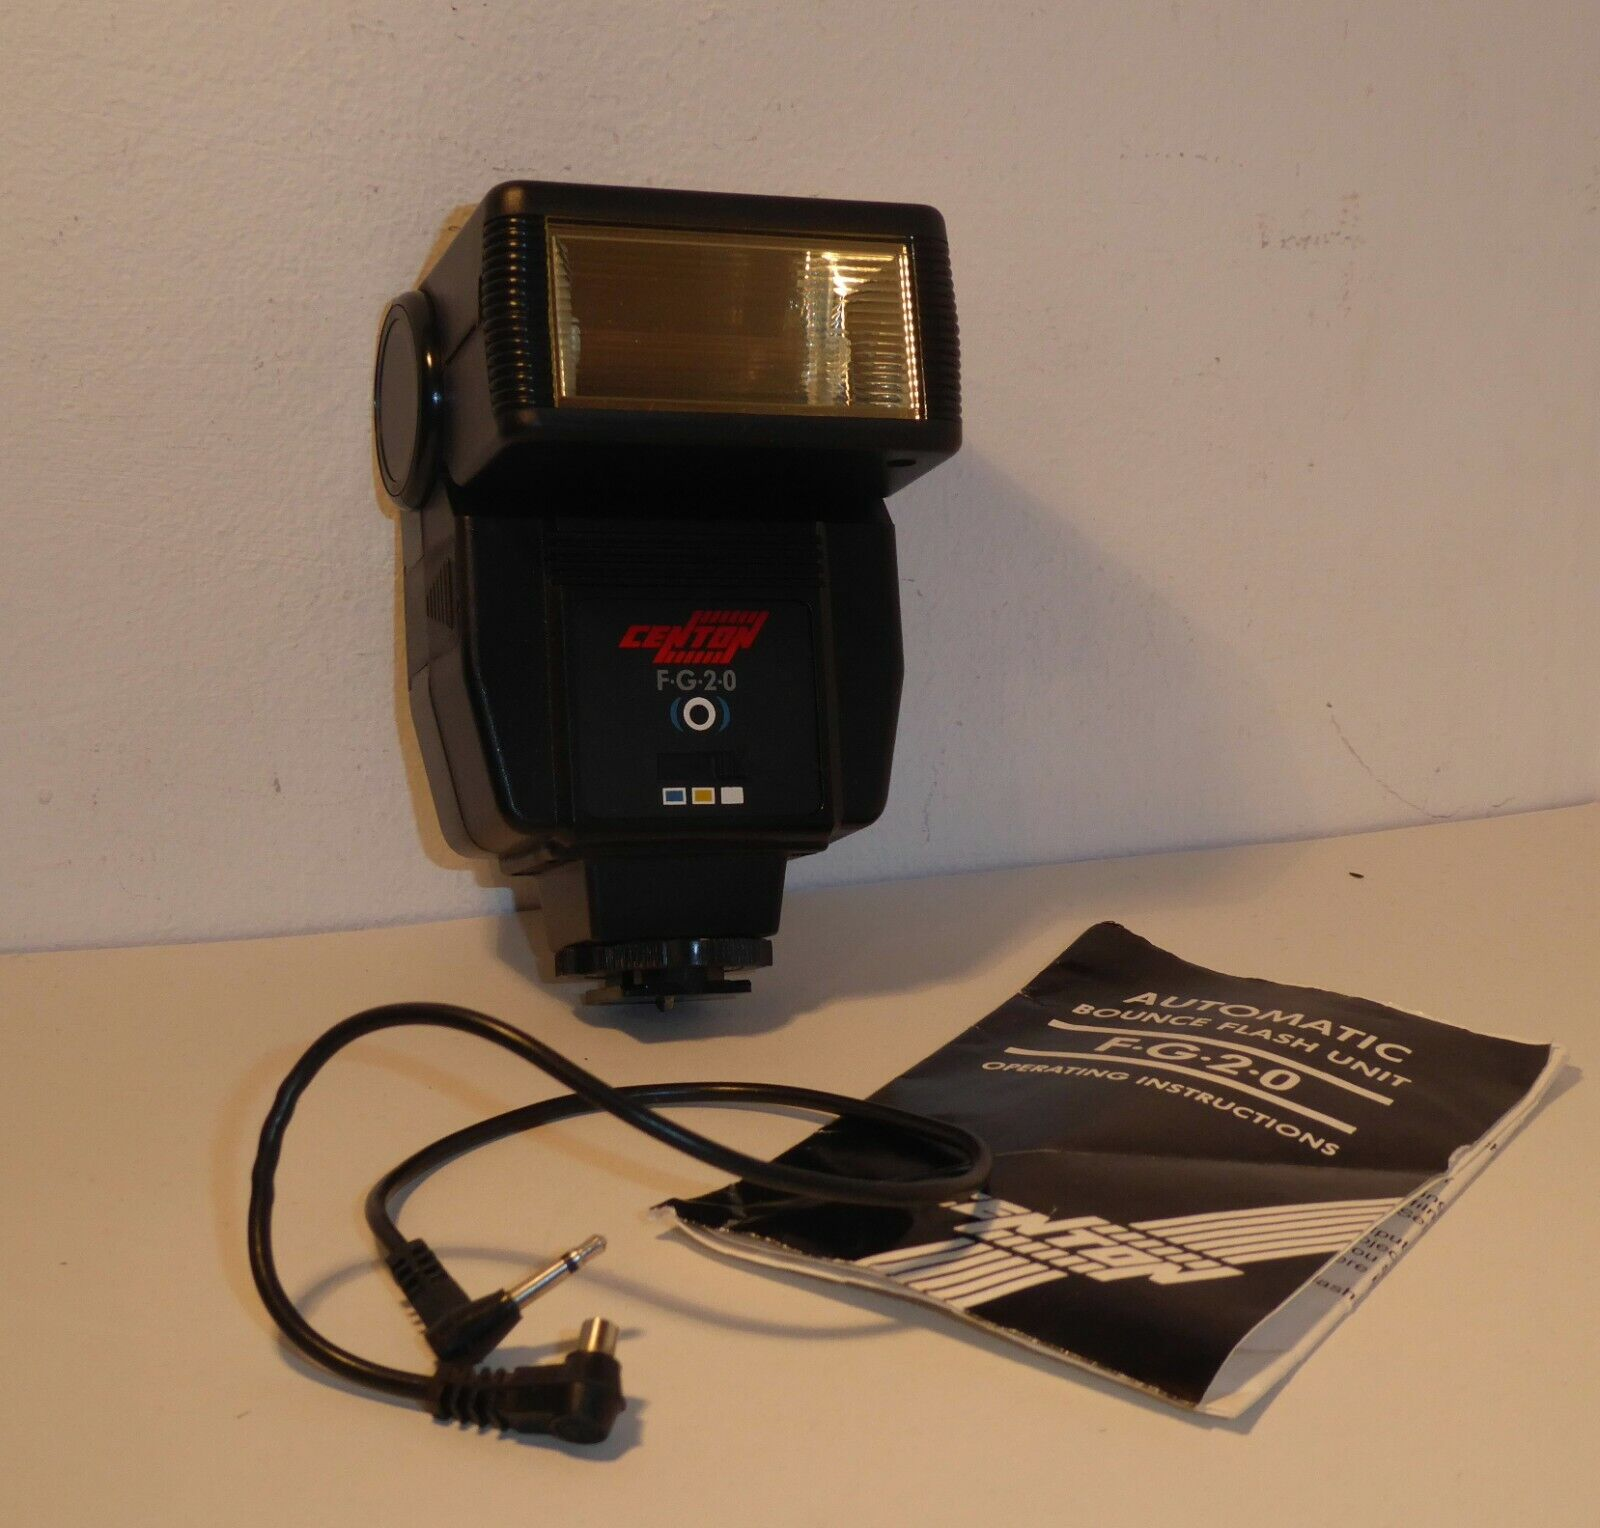 COMPACT CENTON F230 BOUNCE FLASH for MANUAL FOCUS 35mm FILM SLRs